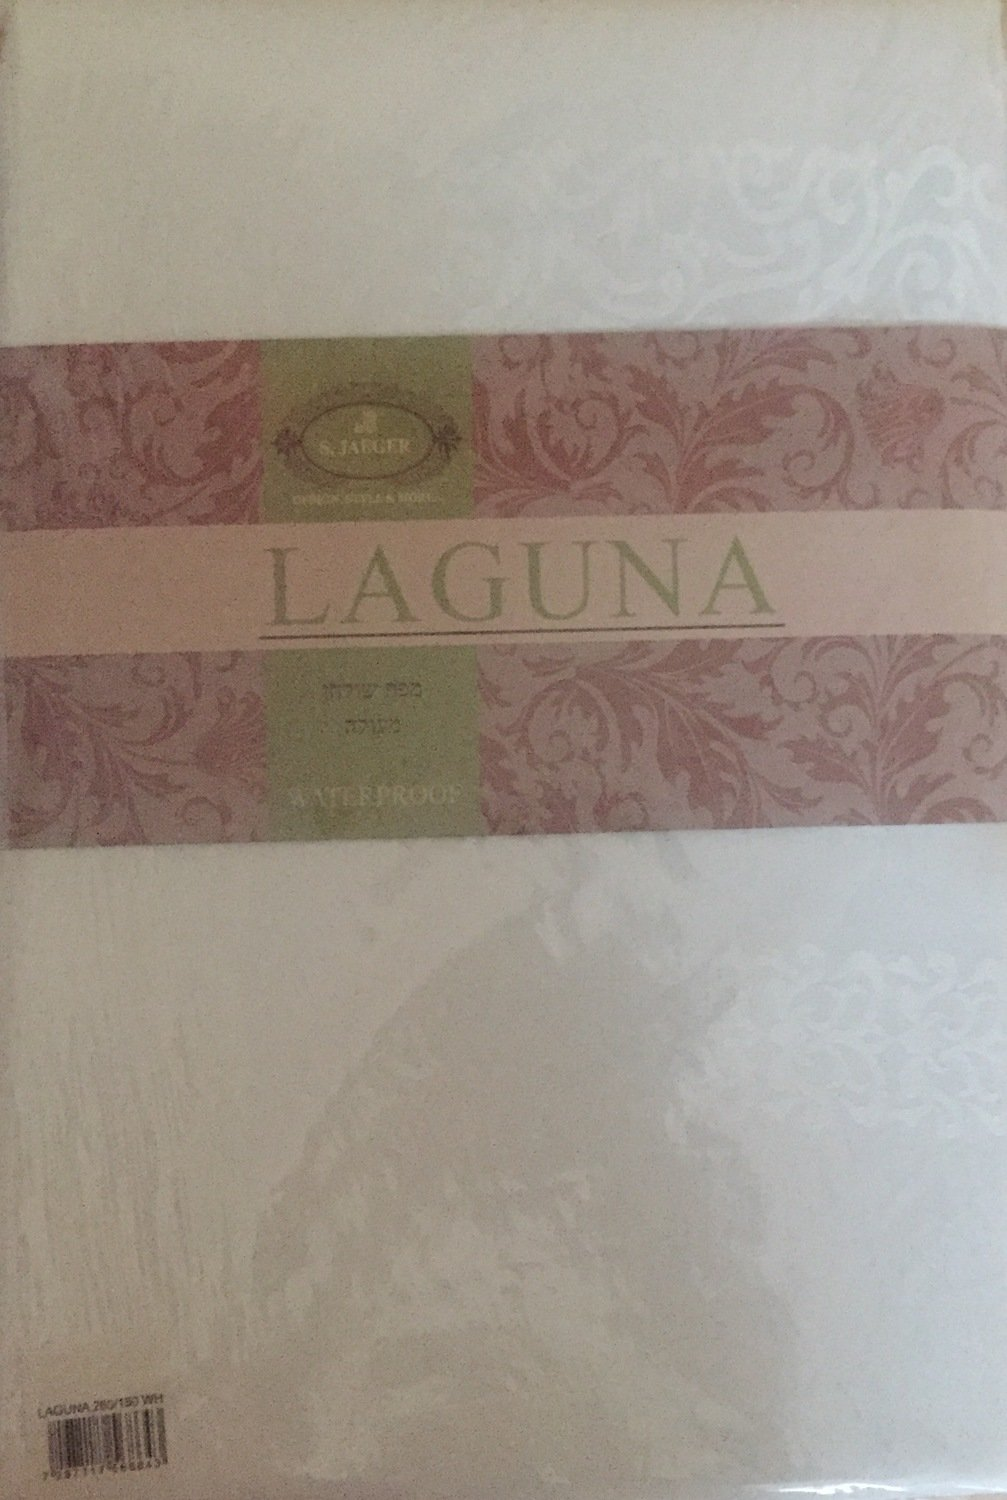 Laguna White Tablecloth, 220cm